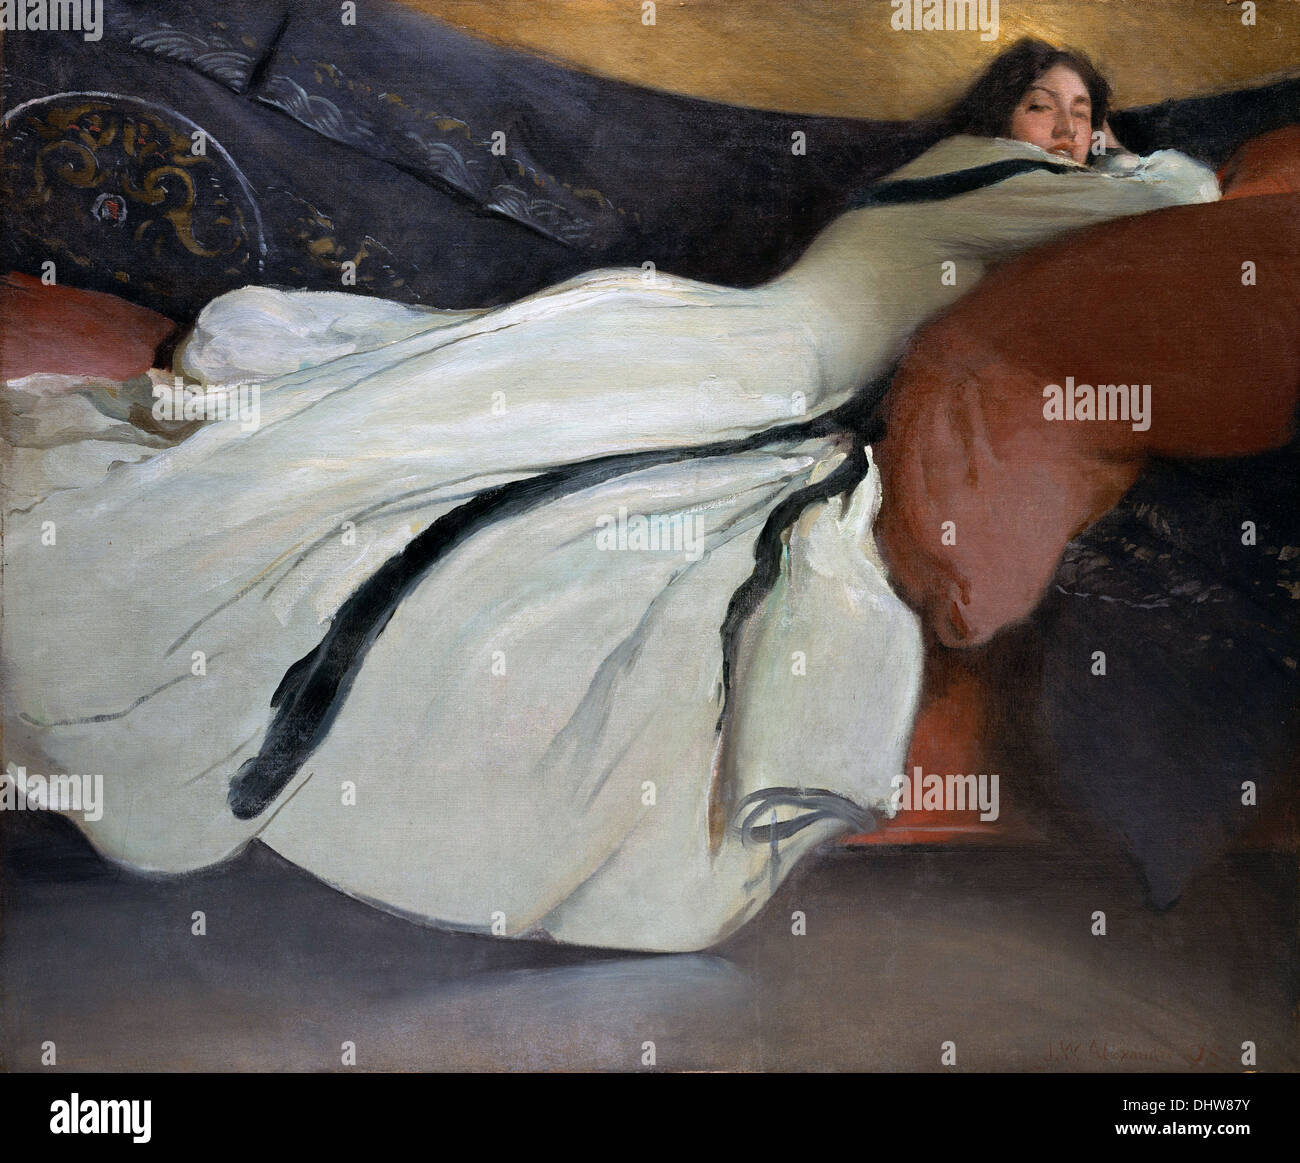 Repos - par John White Alexander, 1895 Photo Stock